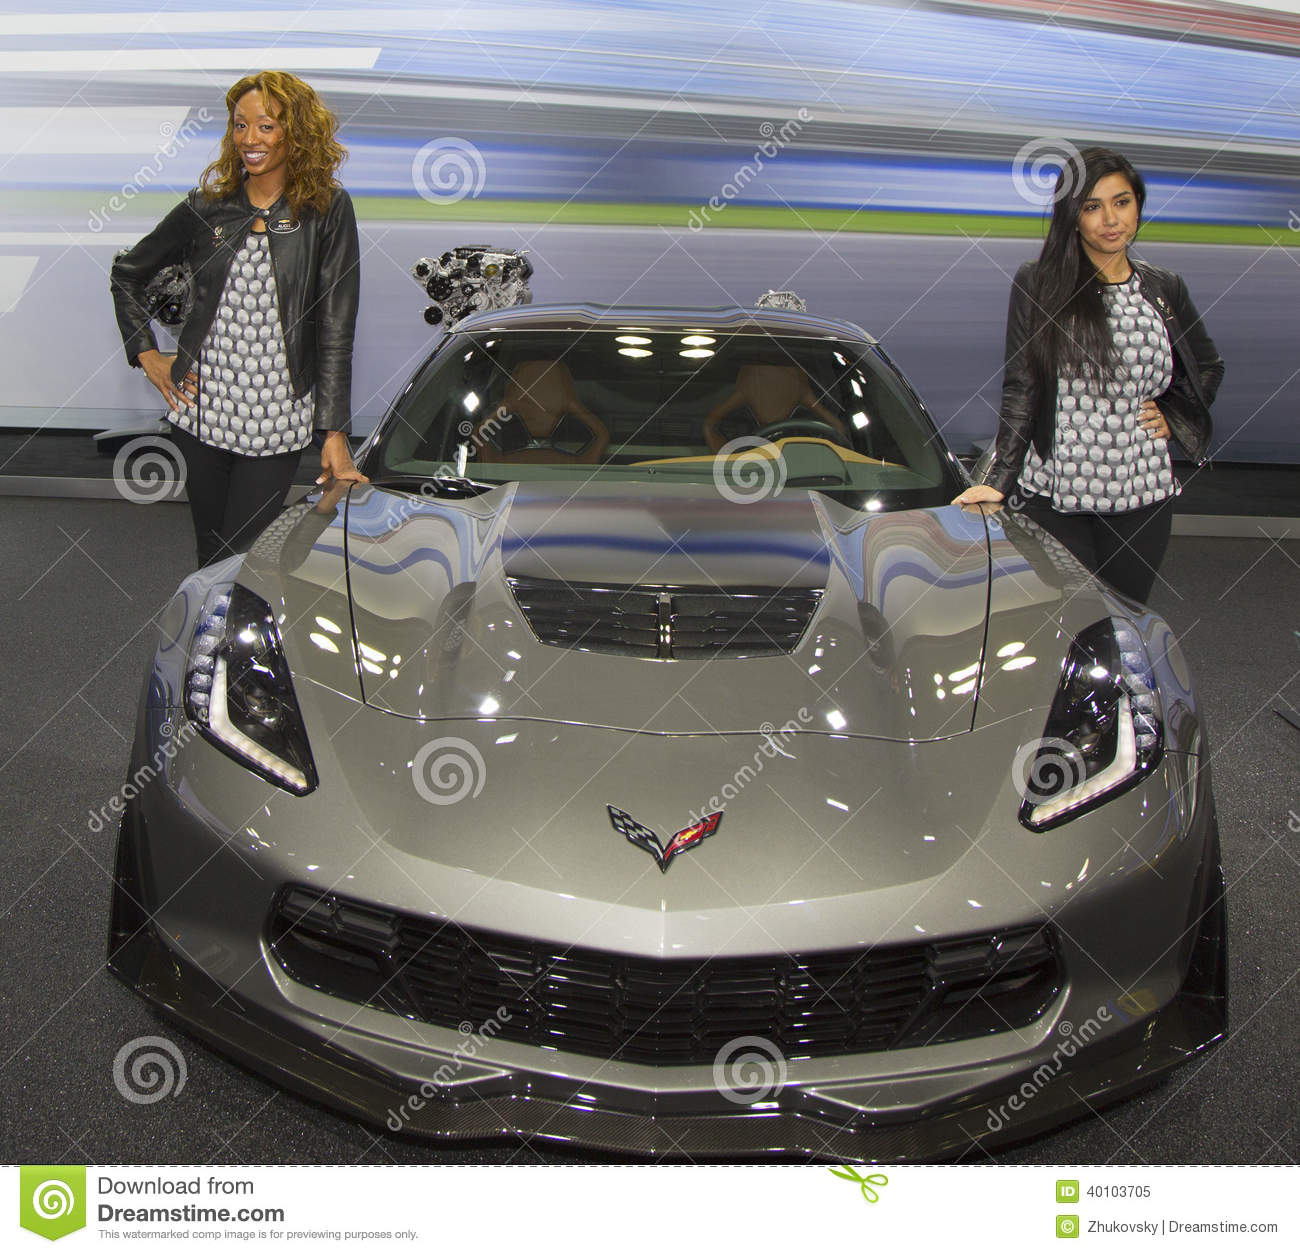 voiture 2015 de chevrolet corvette z06 au salon de l 39 auto 2014 d 39 international de new york image. Black Bedroom Furniture Sets. Home Design Ideas